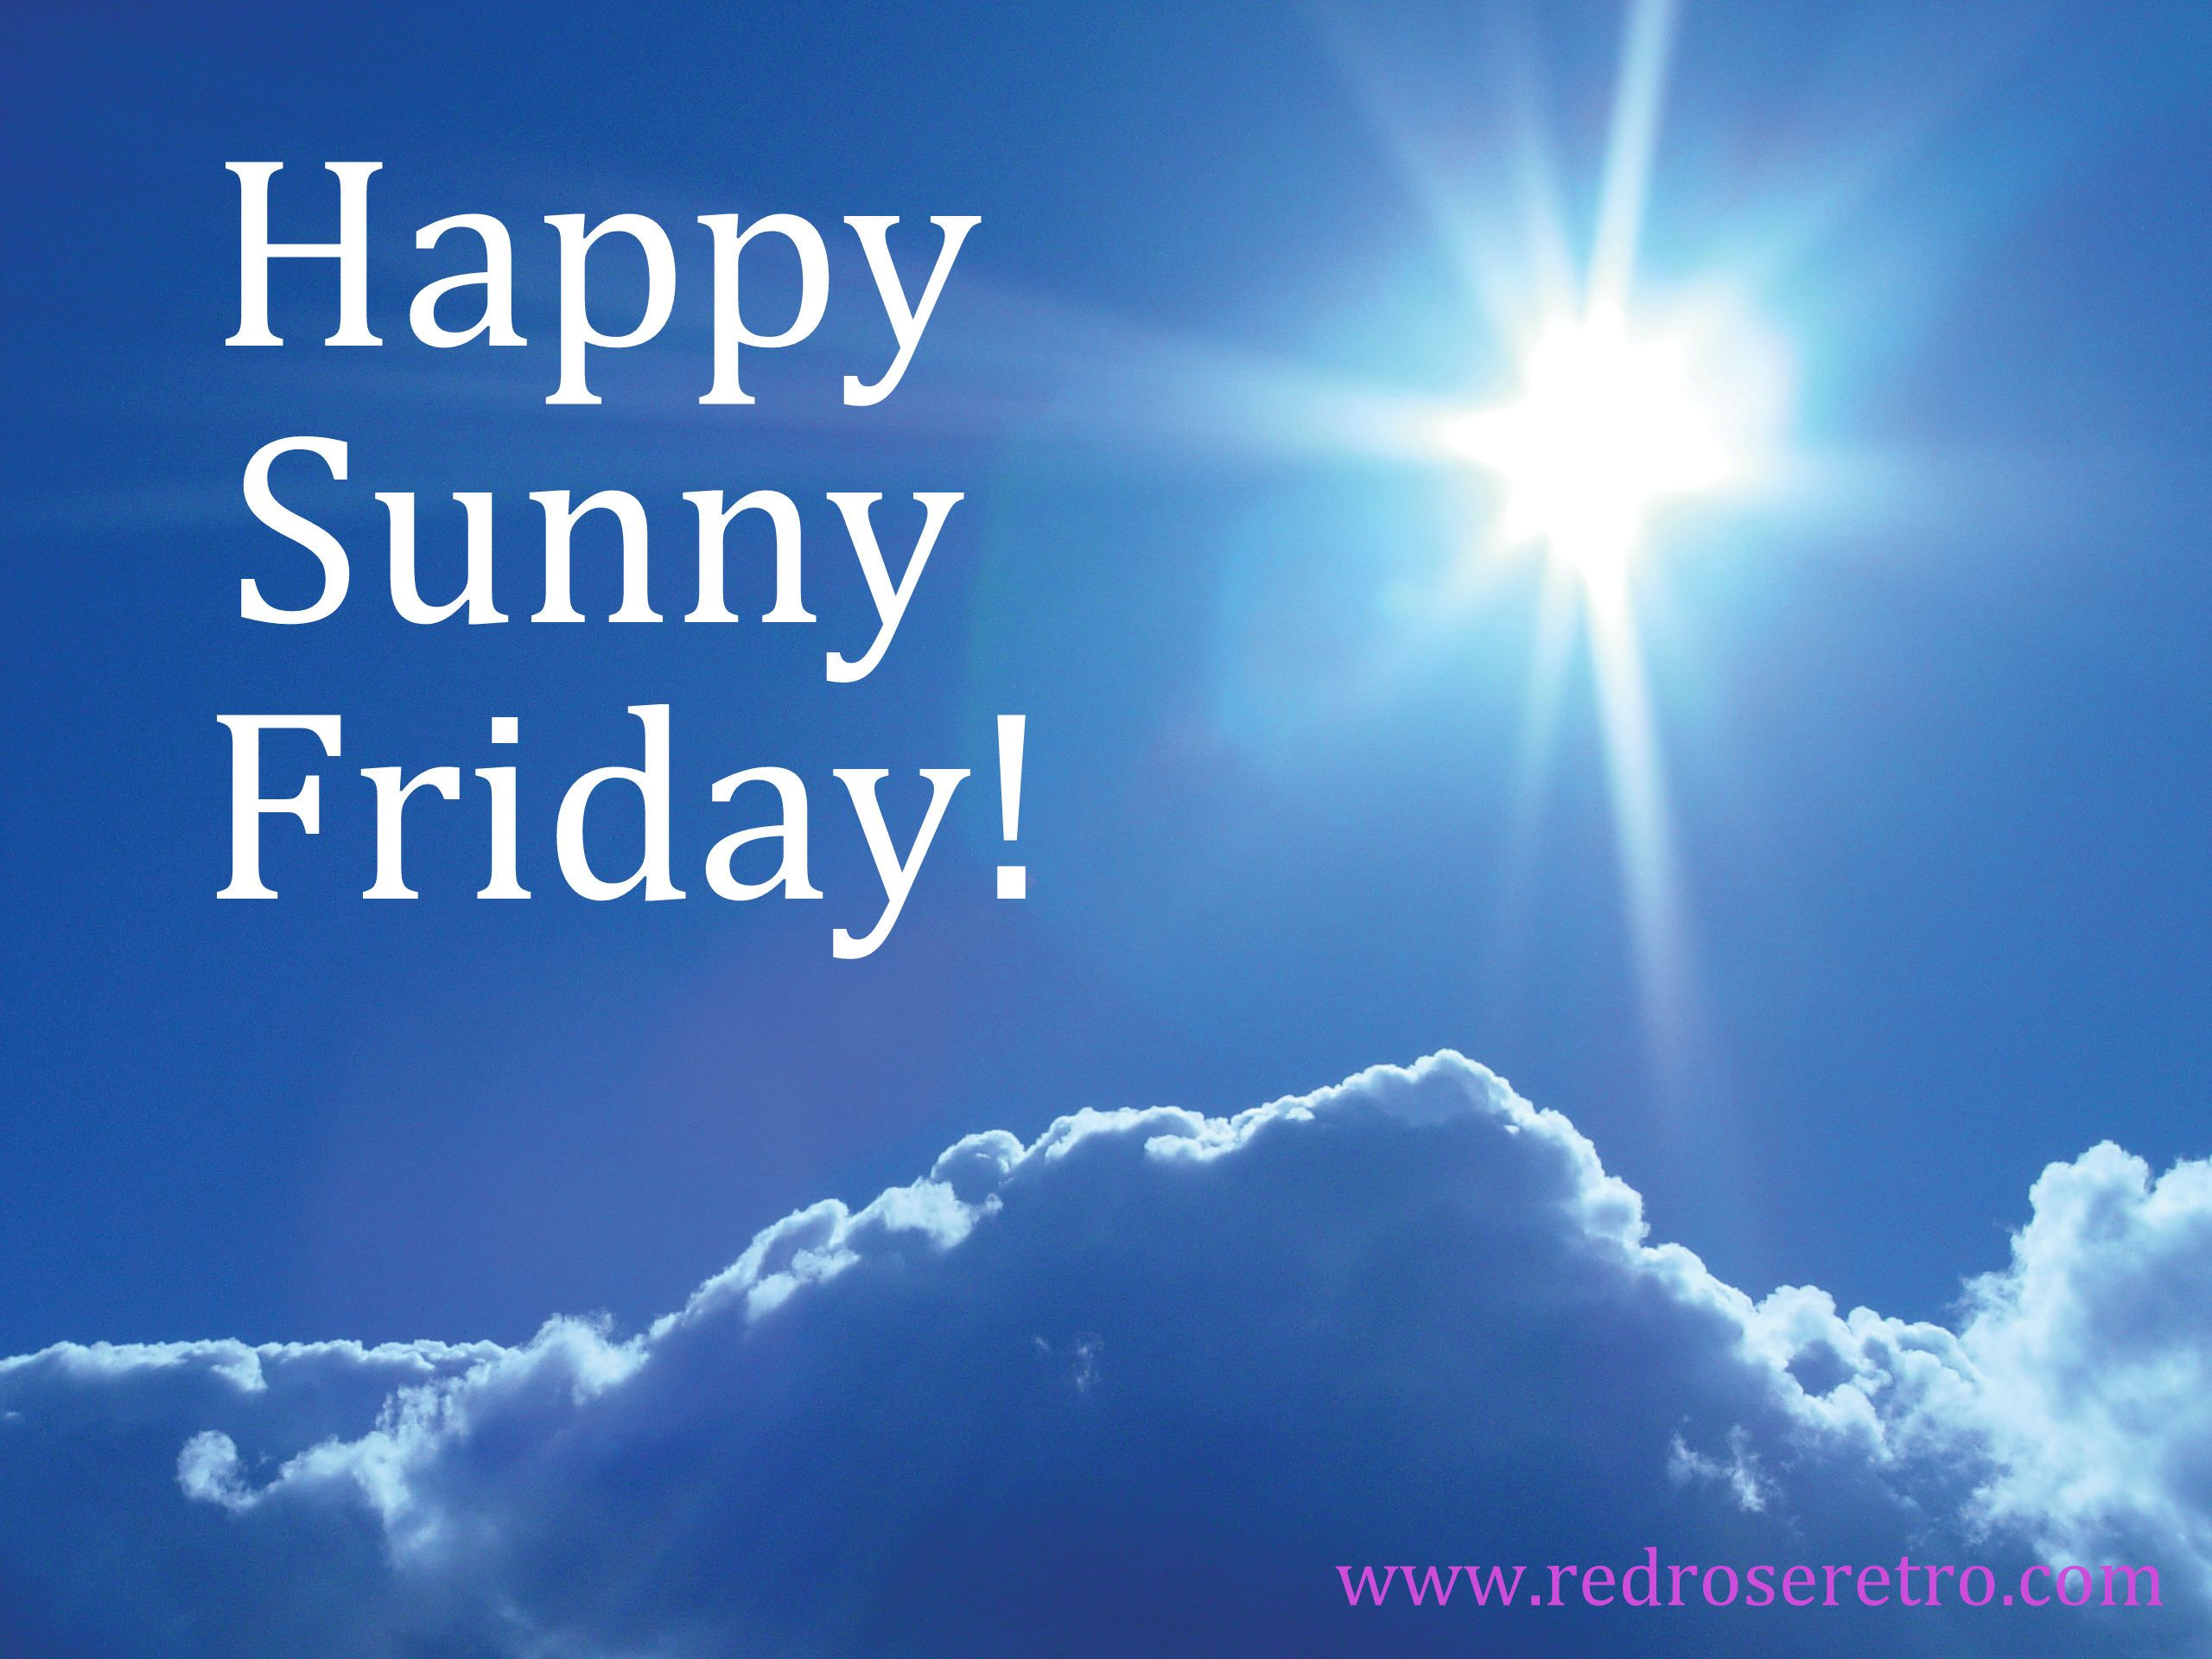 Happy Sunny Friday! | days of the week wishes! | Its friday ...